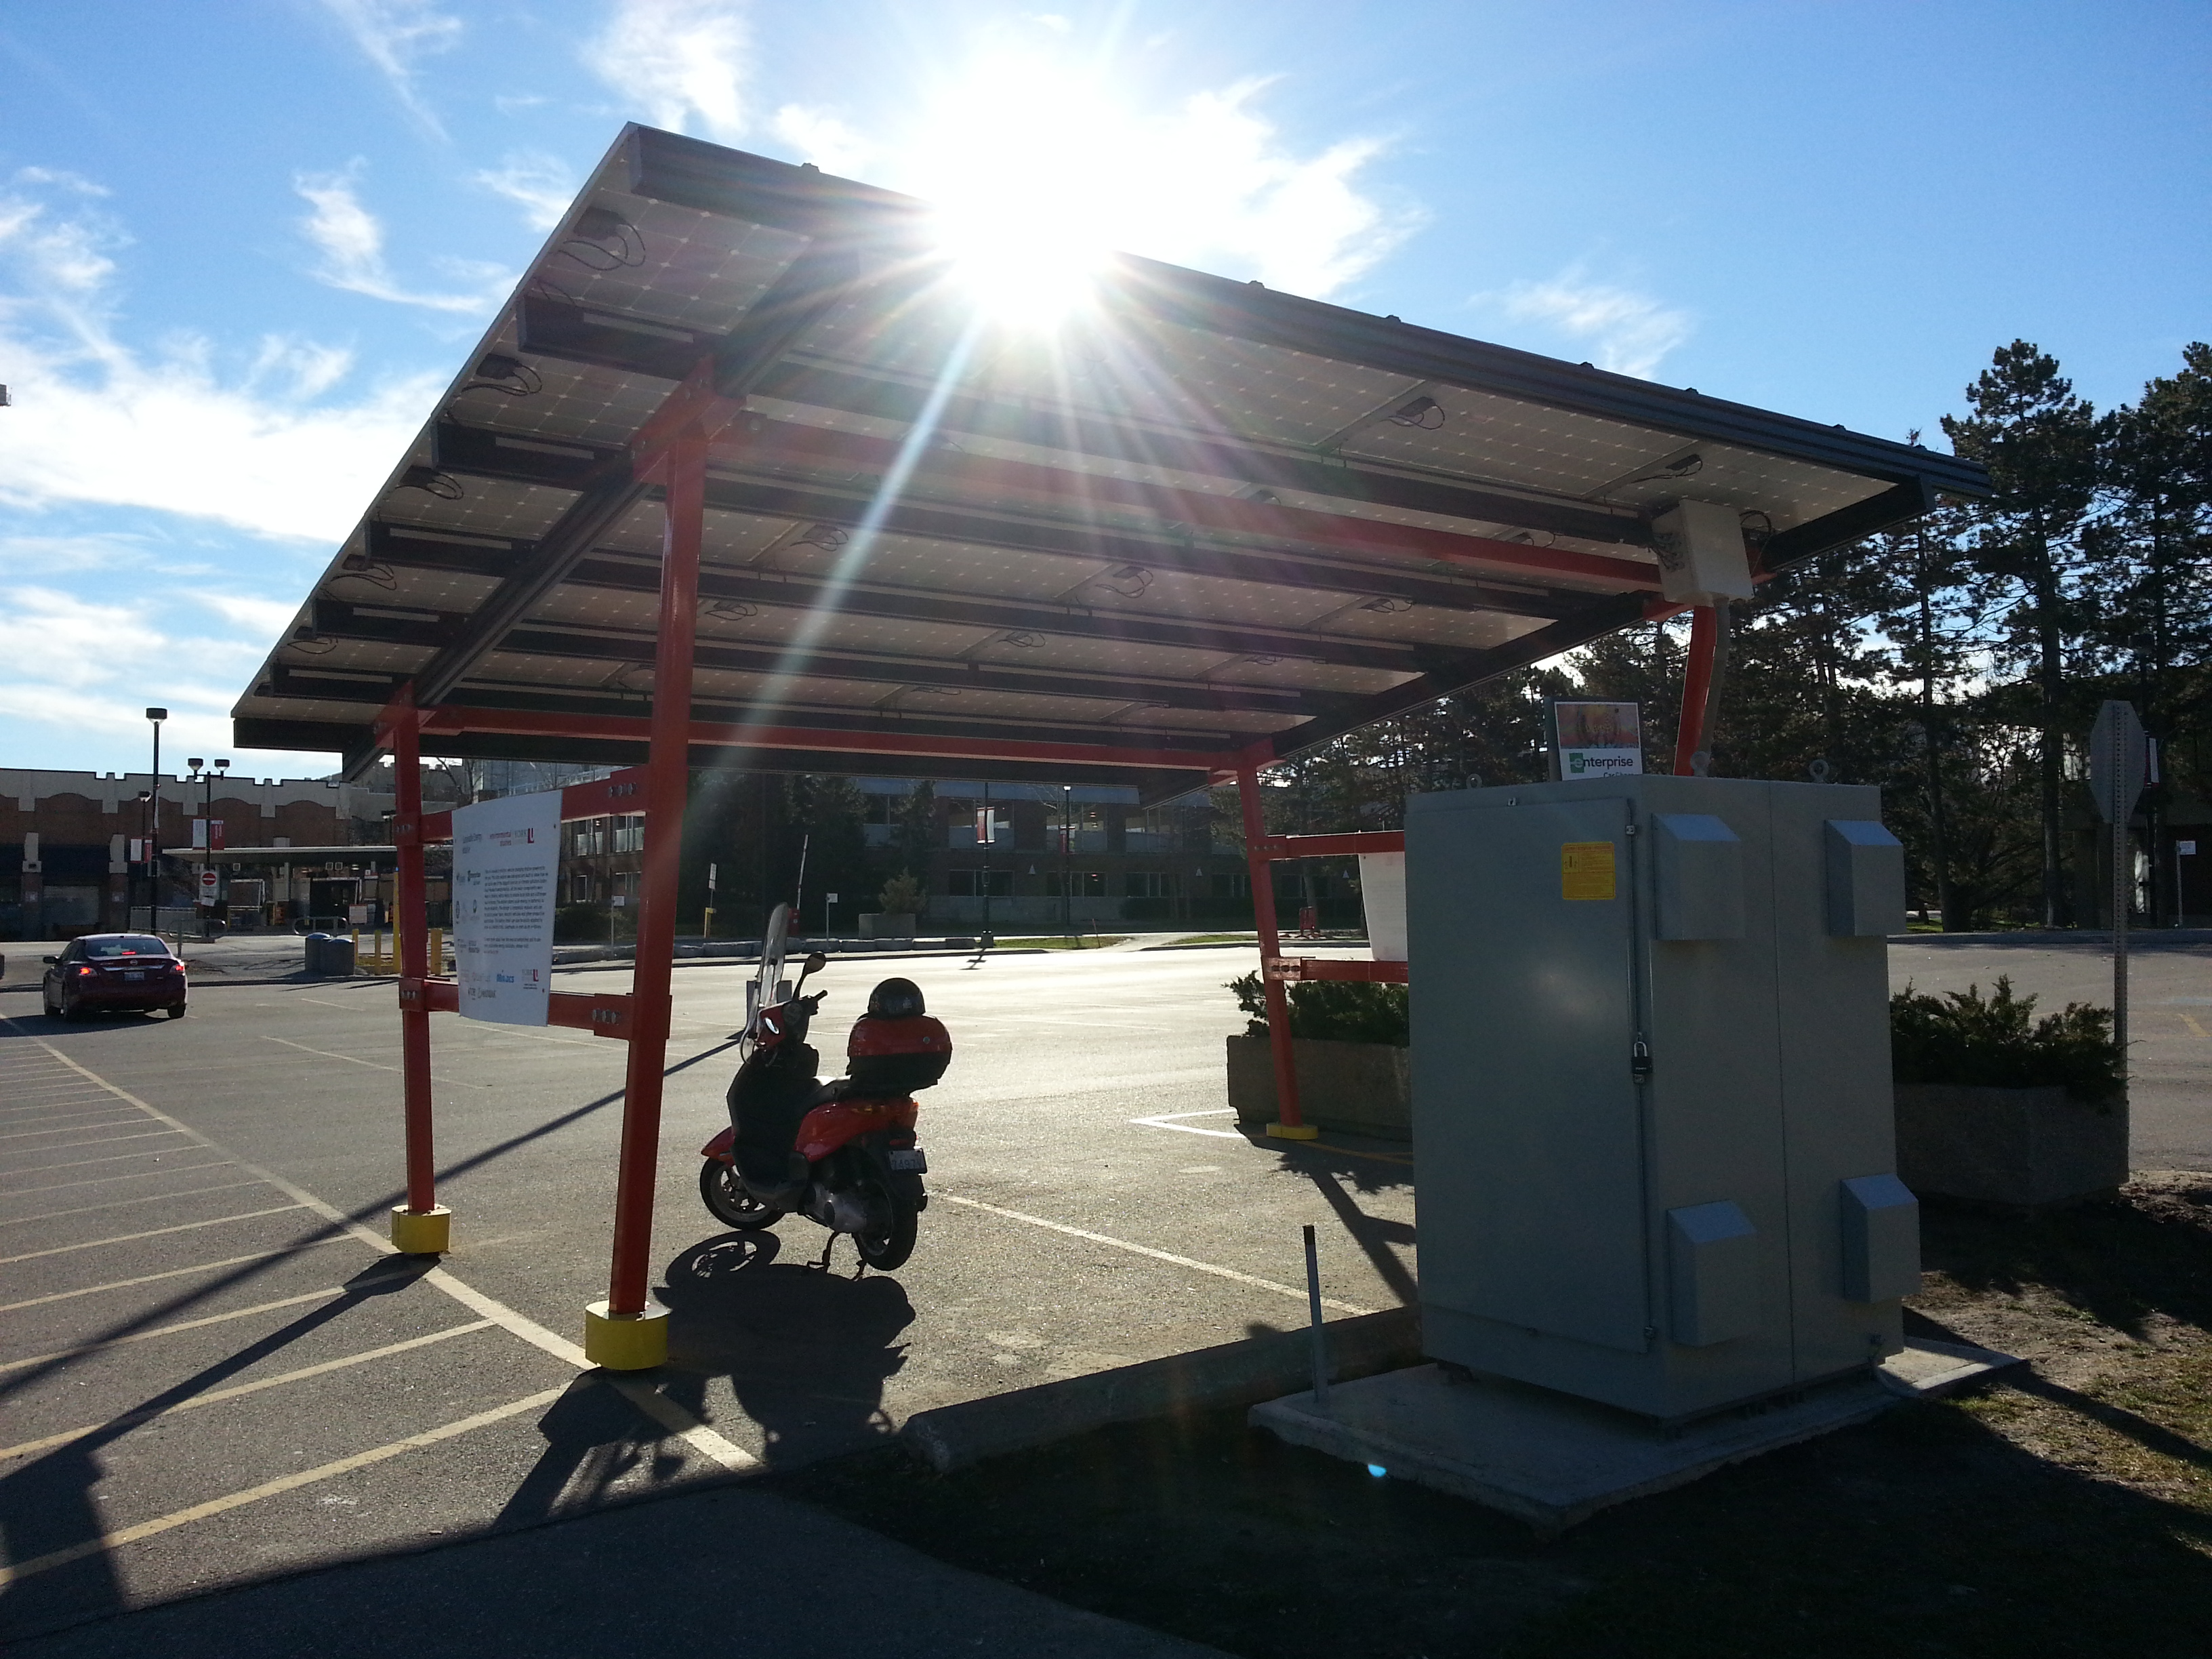 EV Car Charging Station at York University, MFG by Kinetic